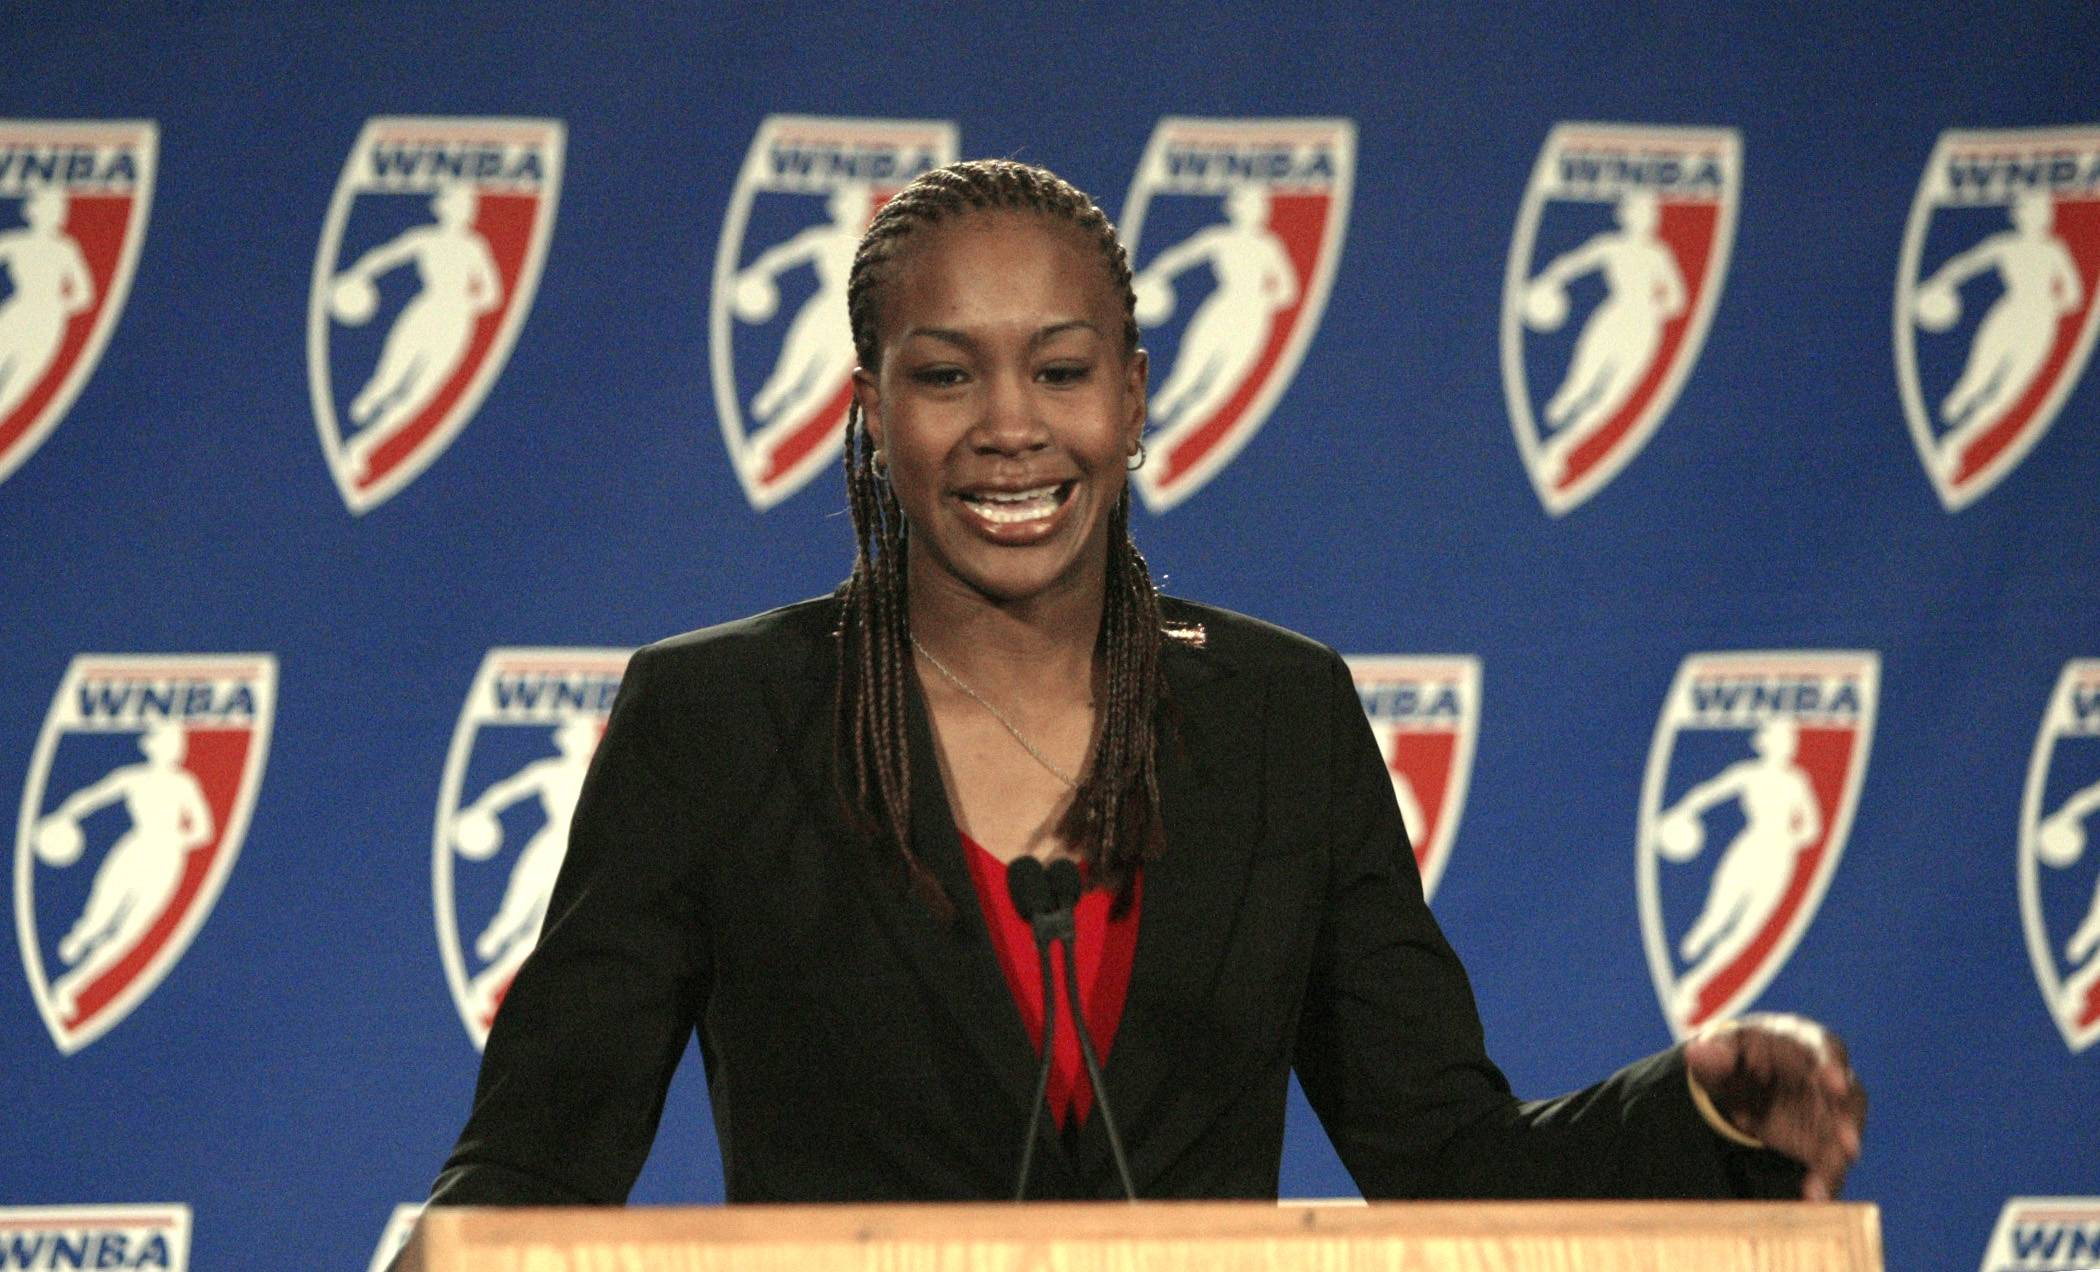 Tamika Catchings has not played for the Indiana Fever this season because of injuries.